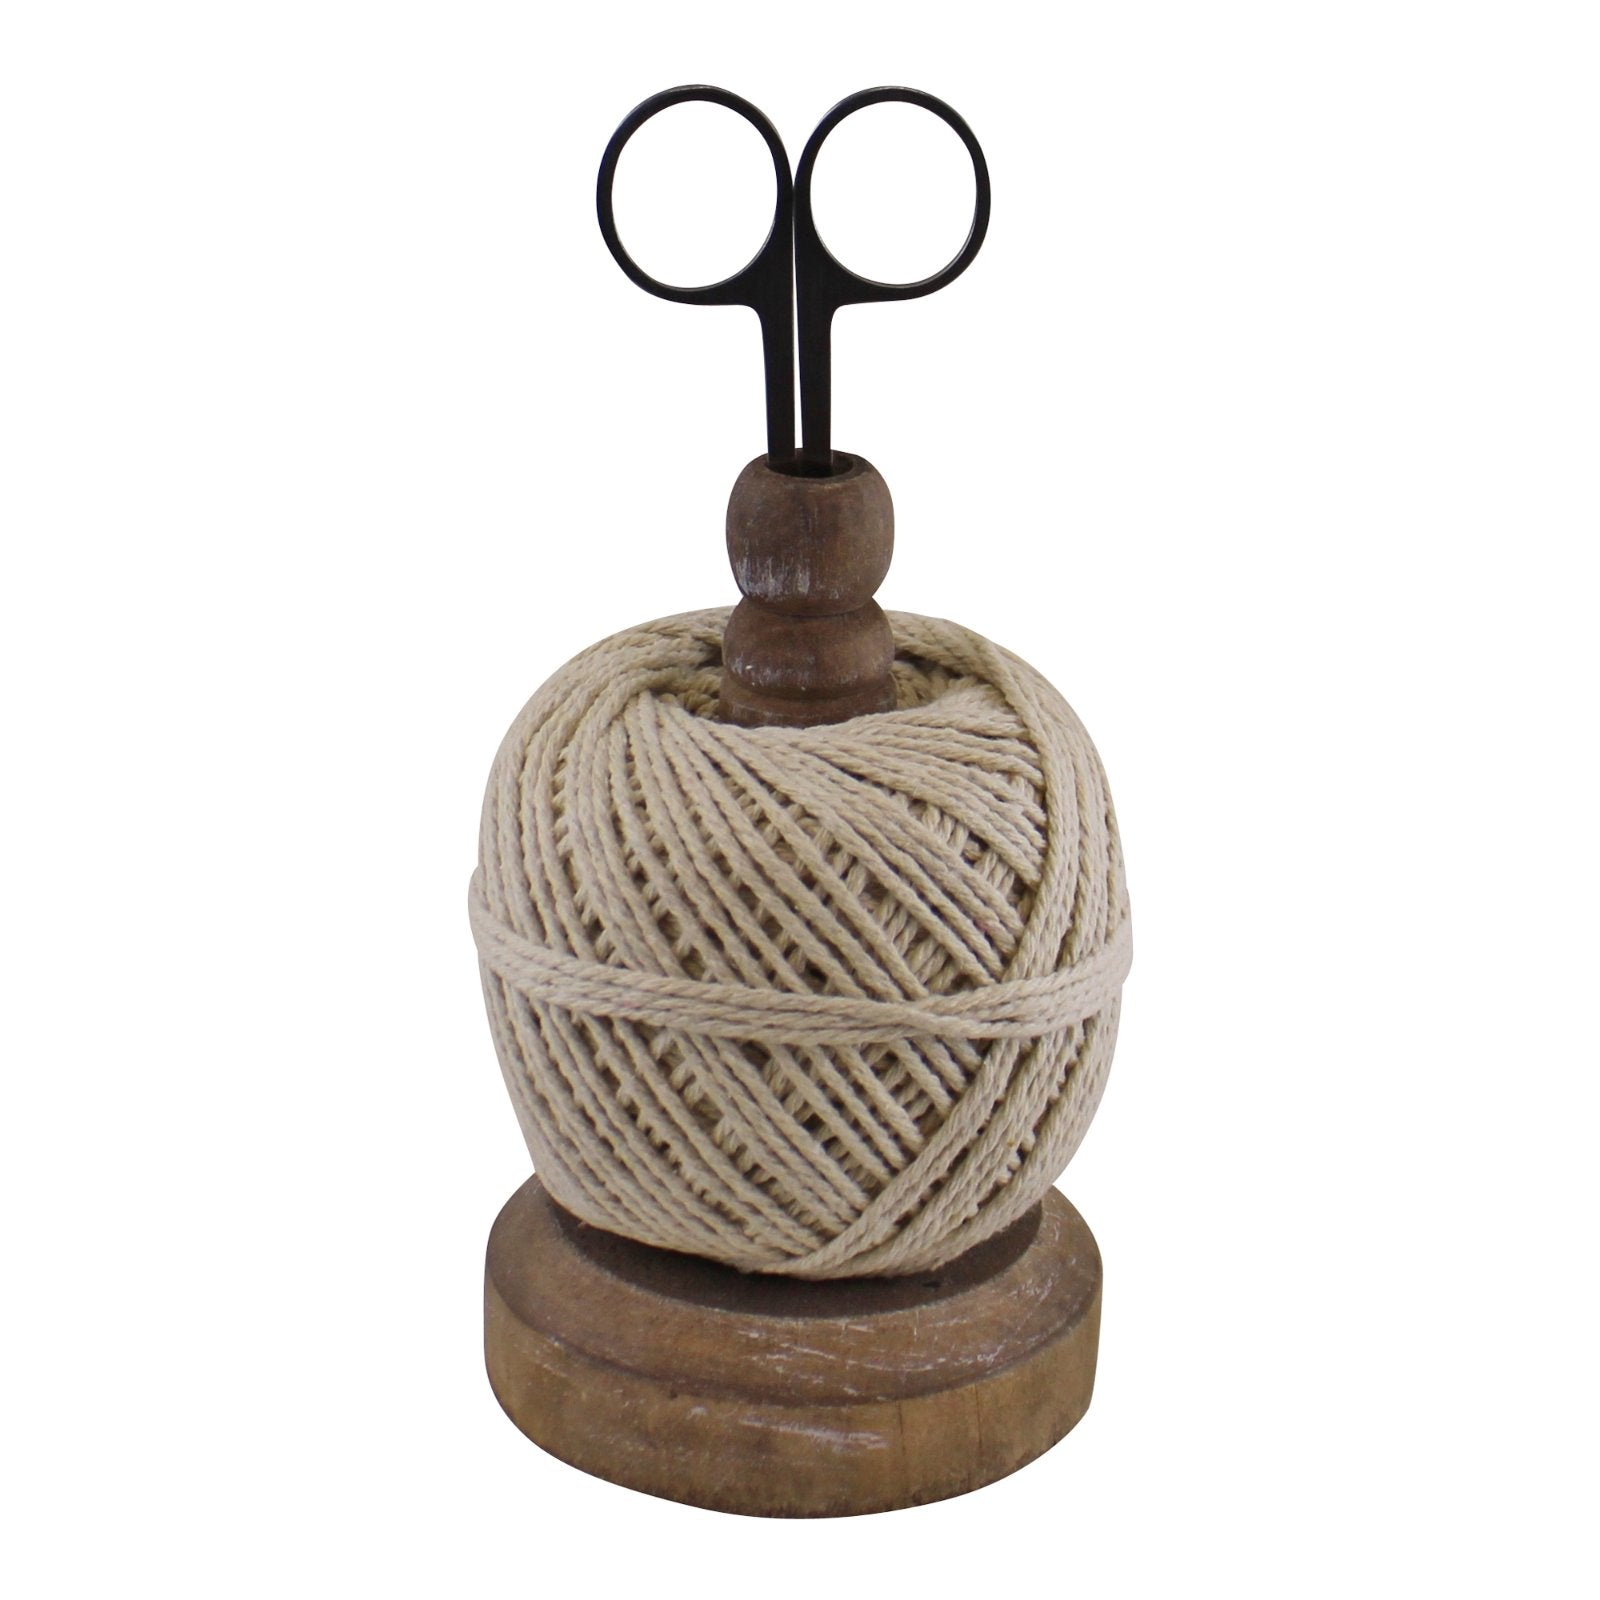 Craft Ball Of String On Stand With Scissors, Art & Crafting Tools by Low Cost Gifts